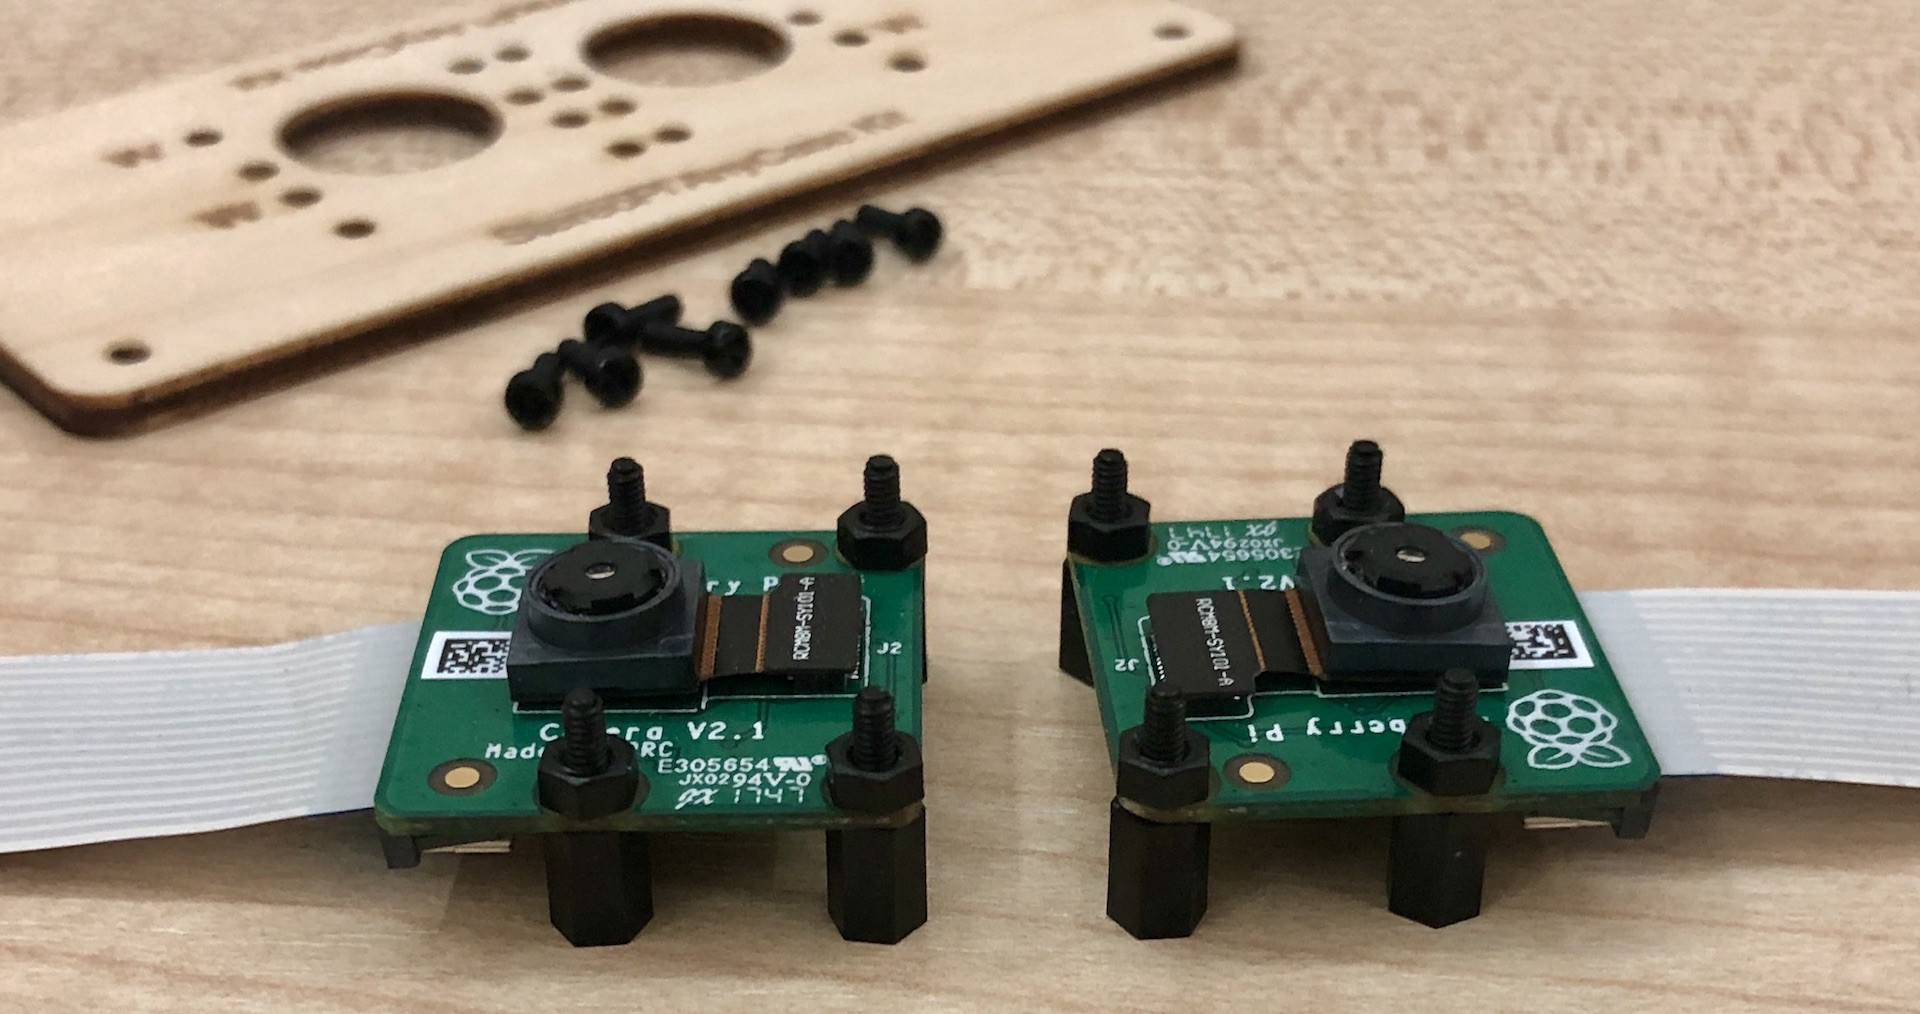 V2 raspberry pi cameras with spacers